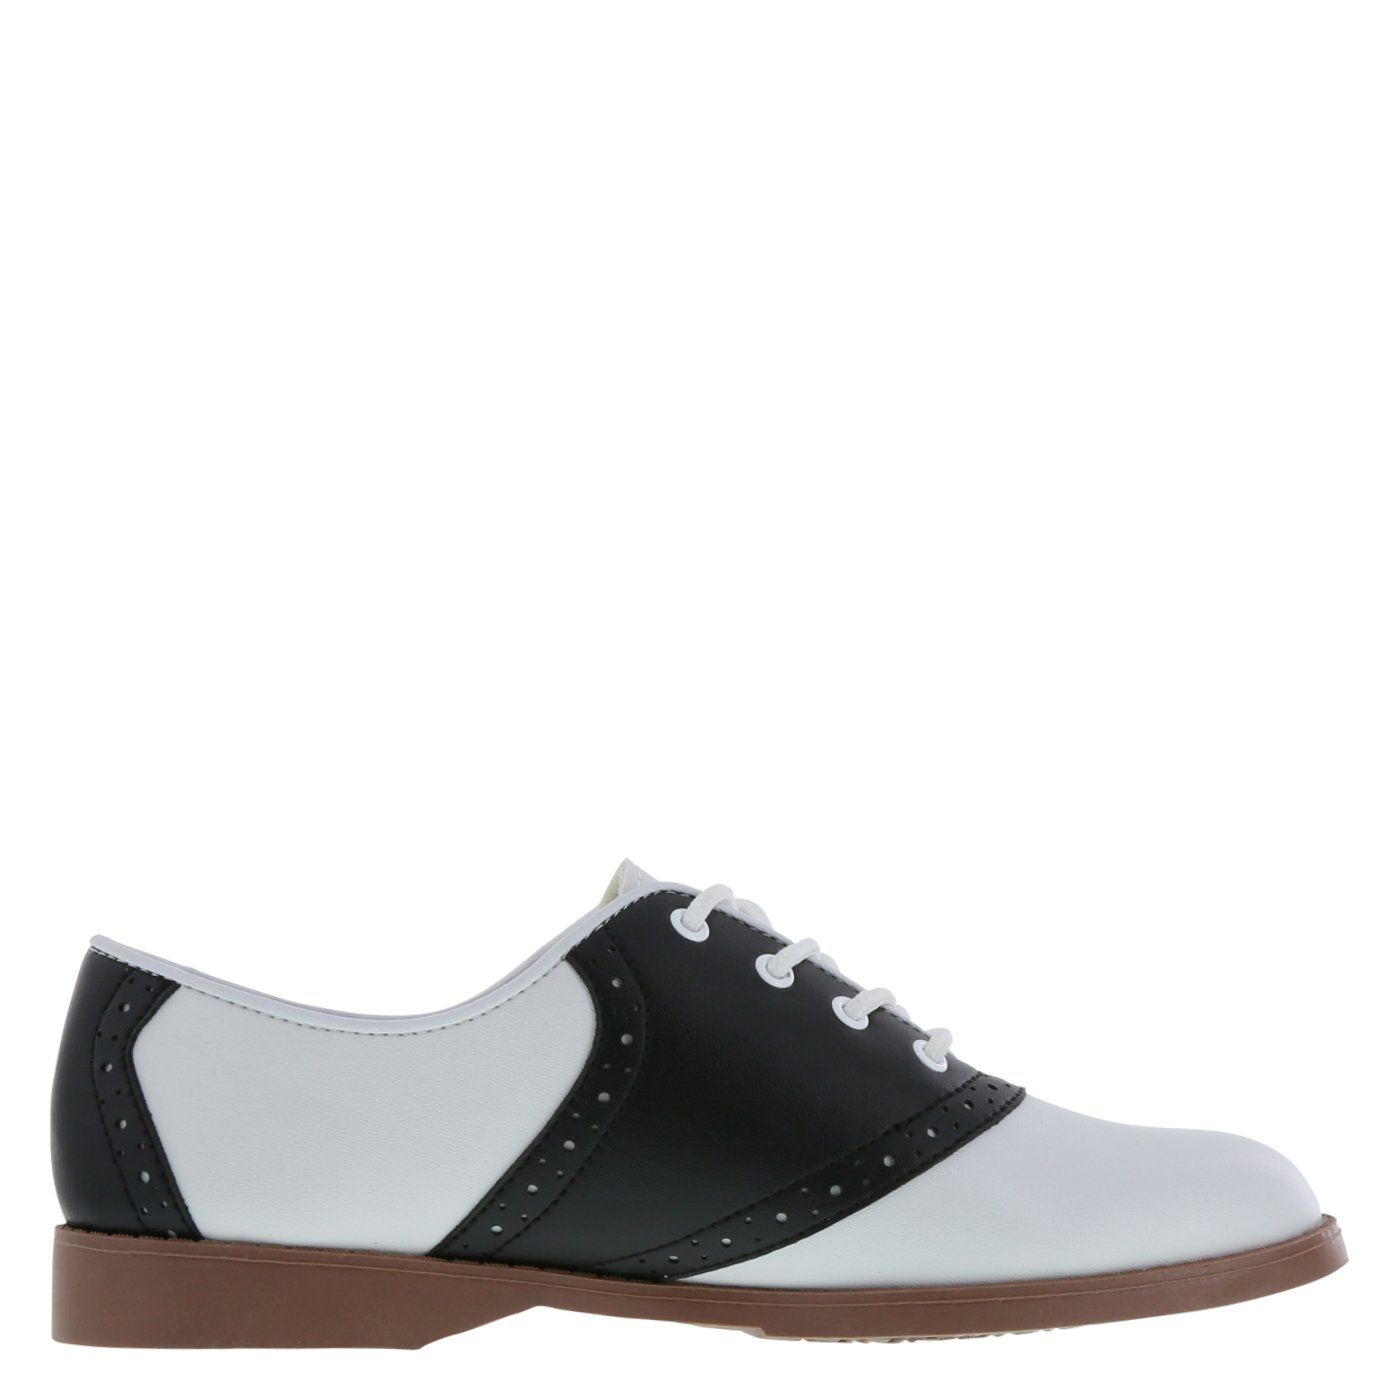 Predictions Womens Black White Saddle Oxford 10 Wide    For more  information 2a9d4e8271